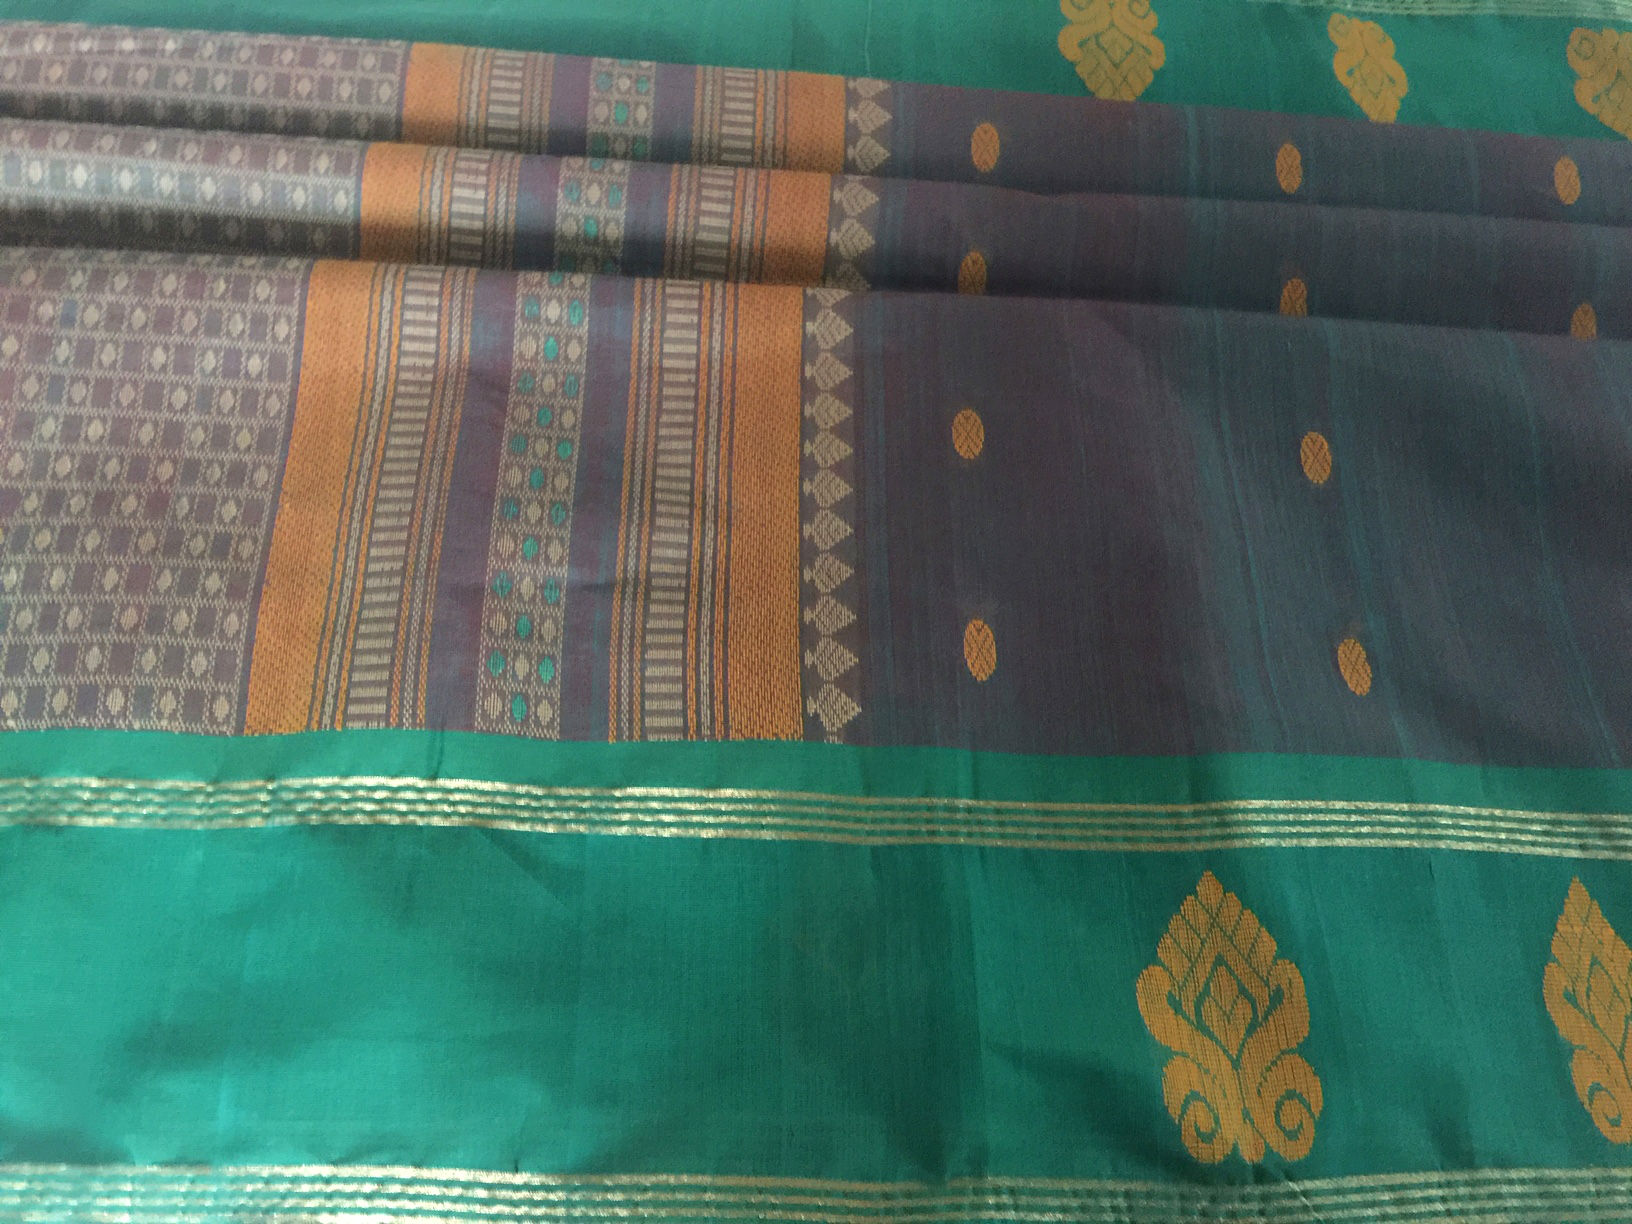 Paramakudi Grey Shot with Teal Cotton